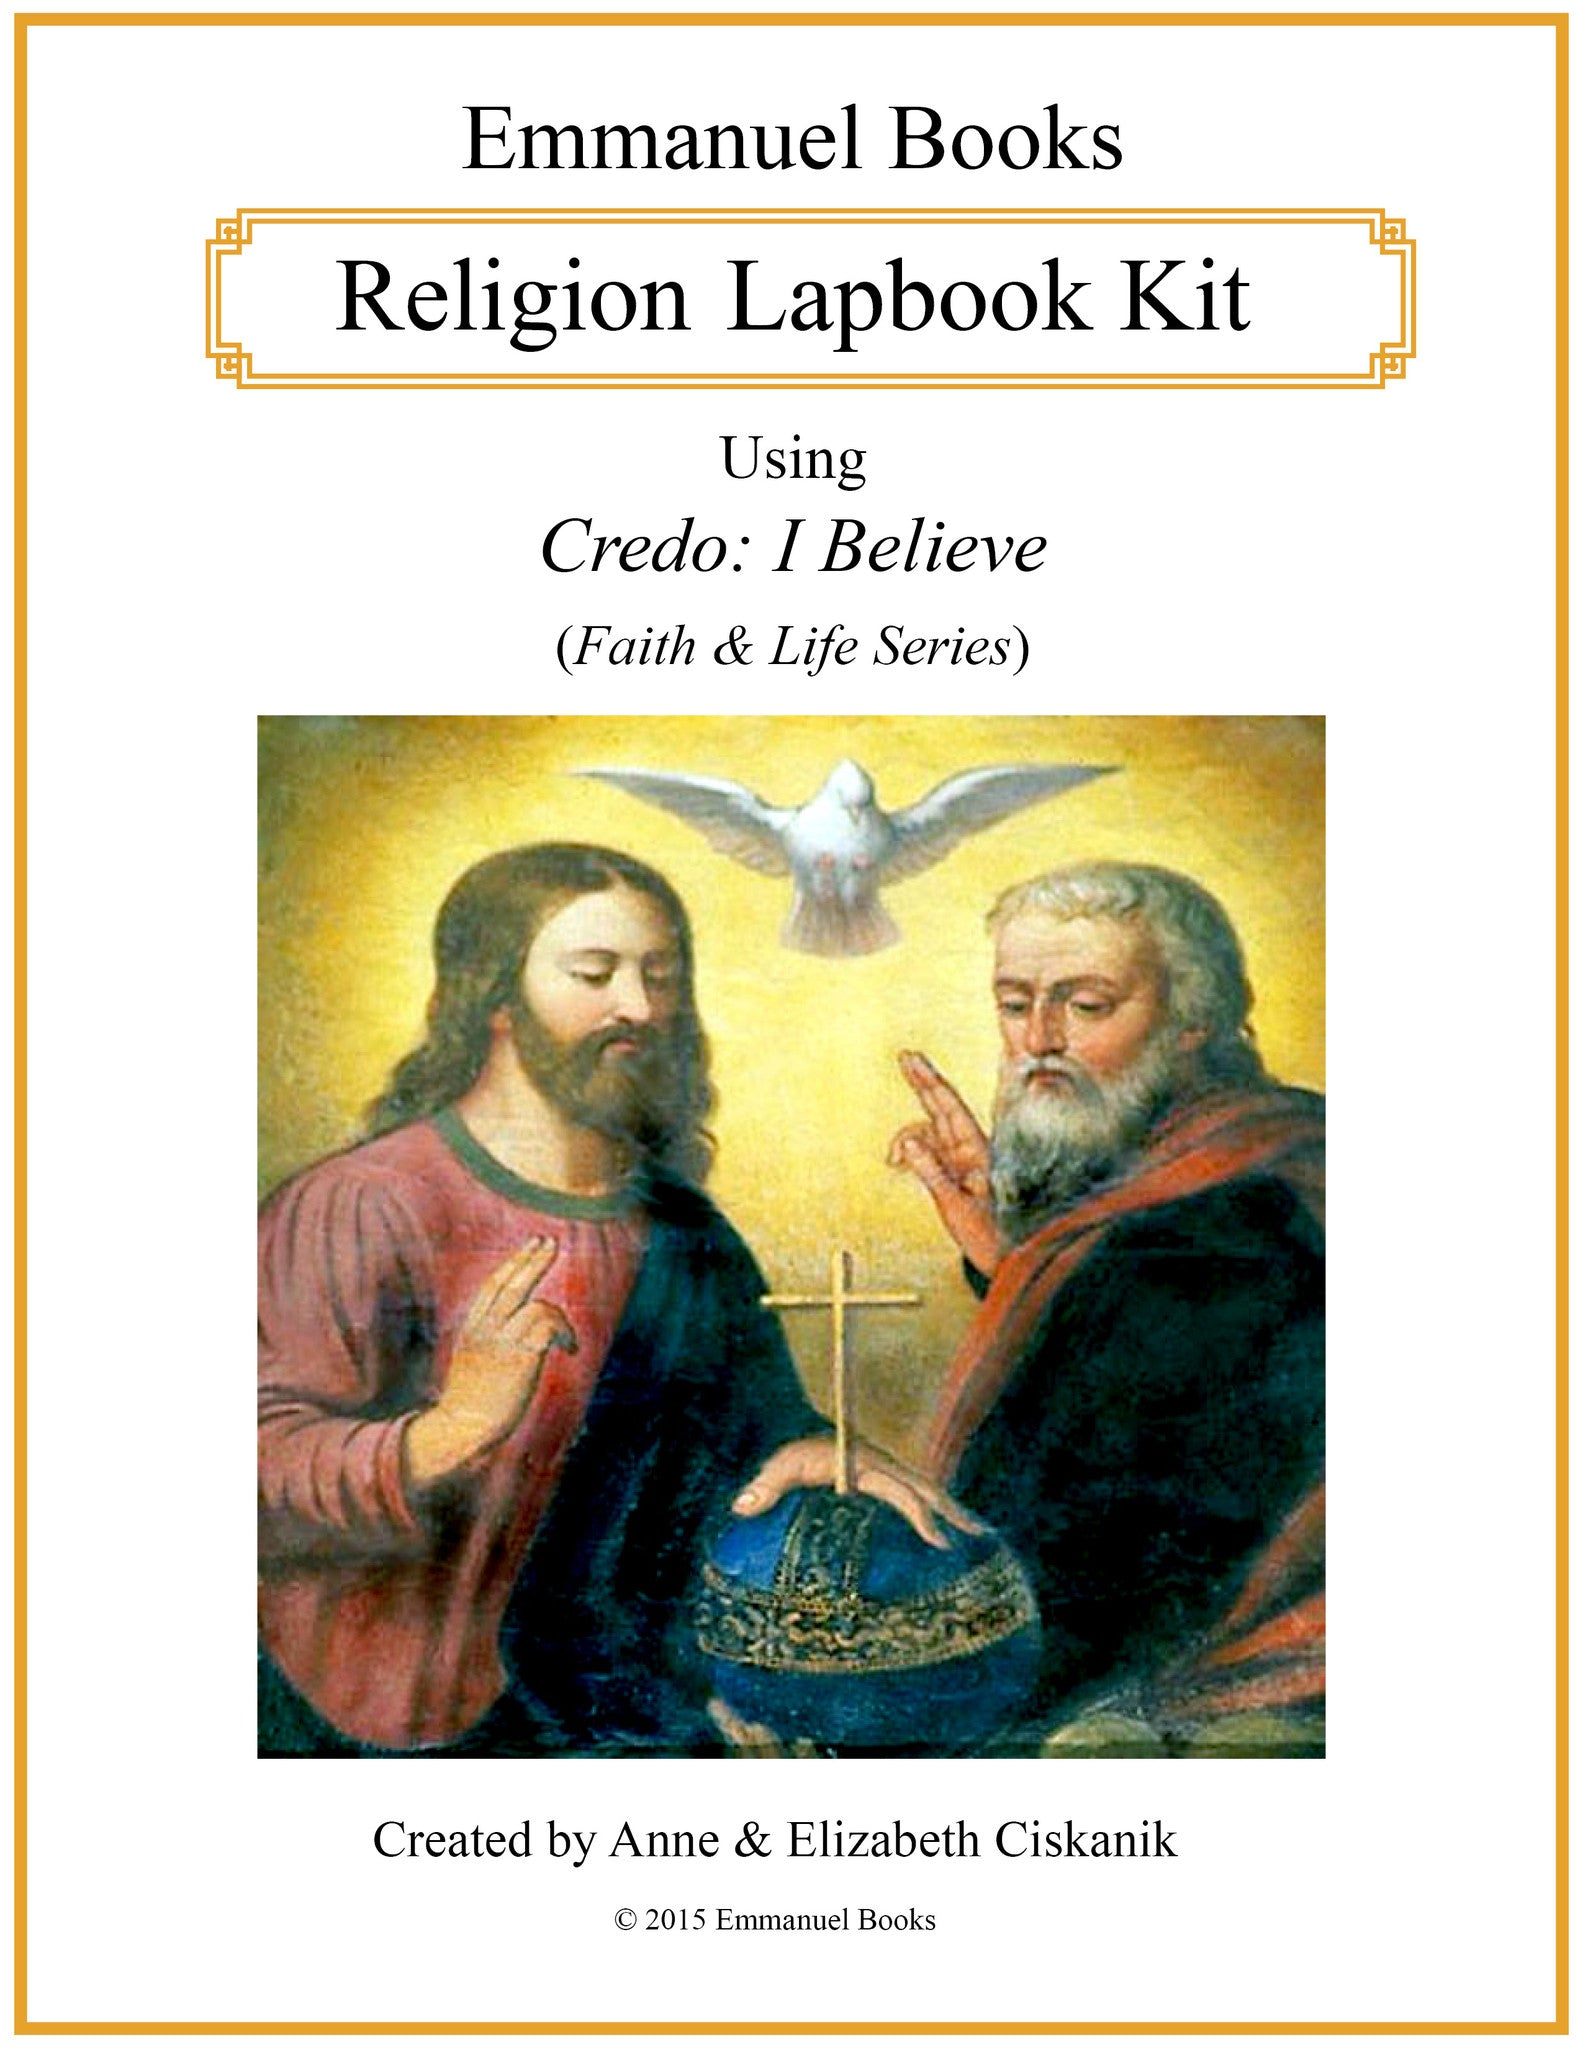 Emmanuel Books Religion Lapbook Kit using Credo: I Believe